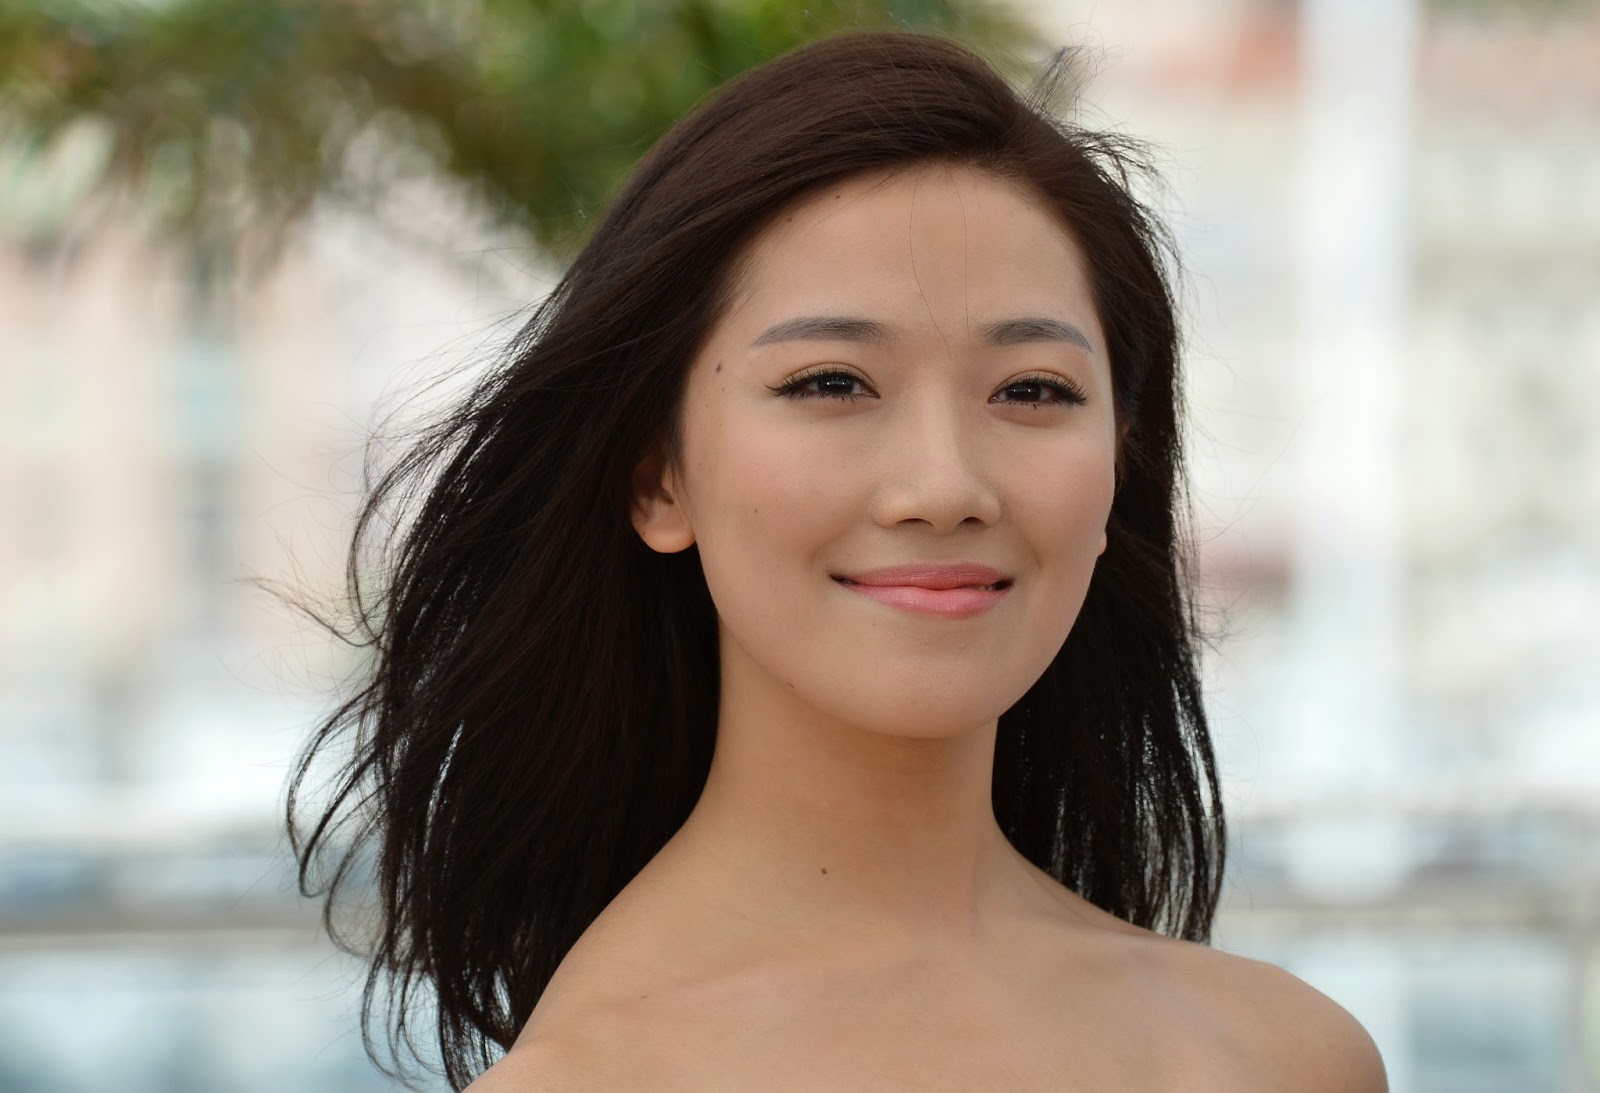 Cannes, Cannes Festival, Cannes Film Festival, Chinese Actress, Entertainment, Film, Film Festival, France, French Actress, Hollywood, Hollywood Actress, Renzi Jian, Renzi Jian Photo, Showbiz,